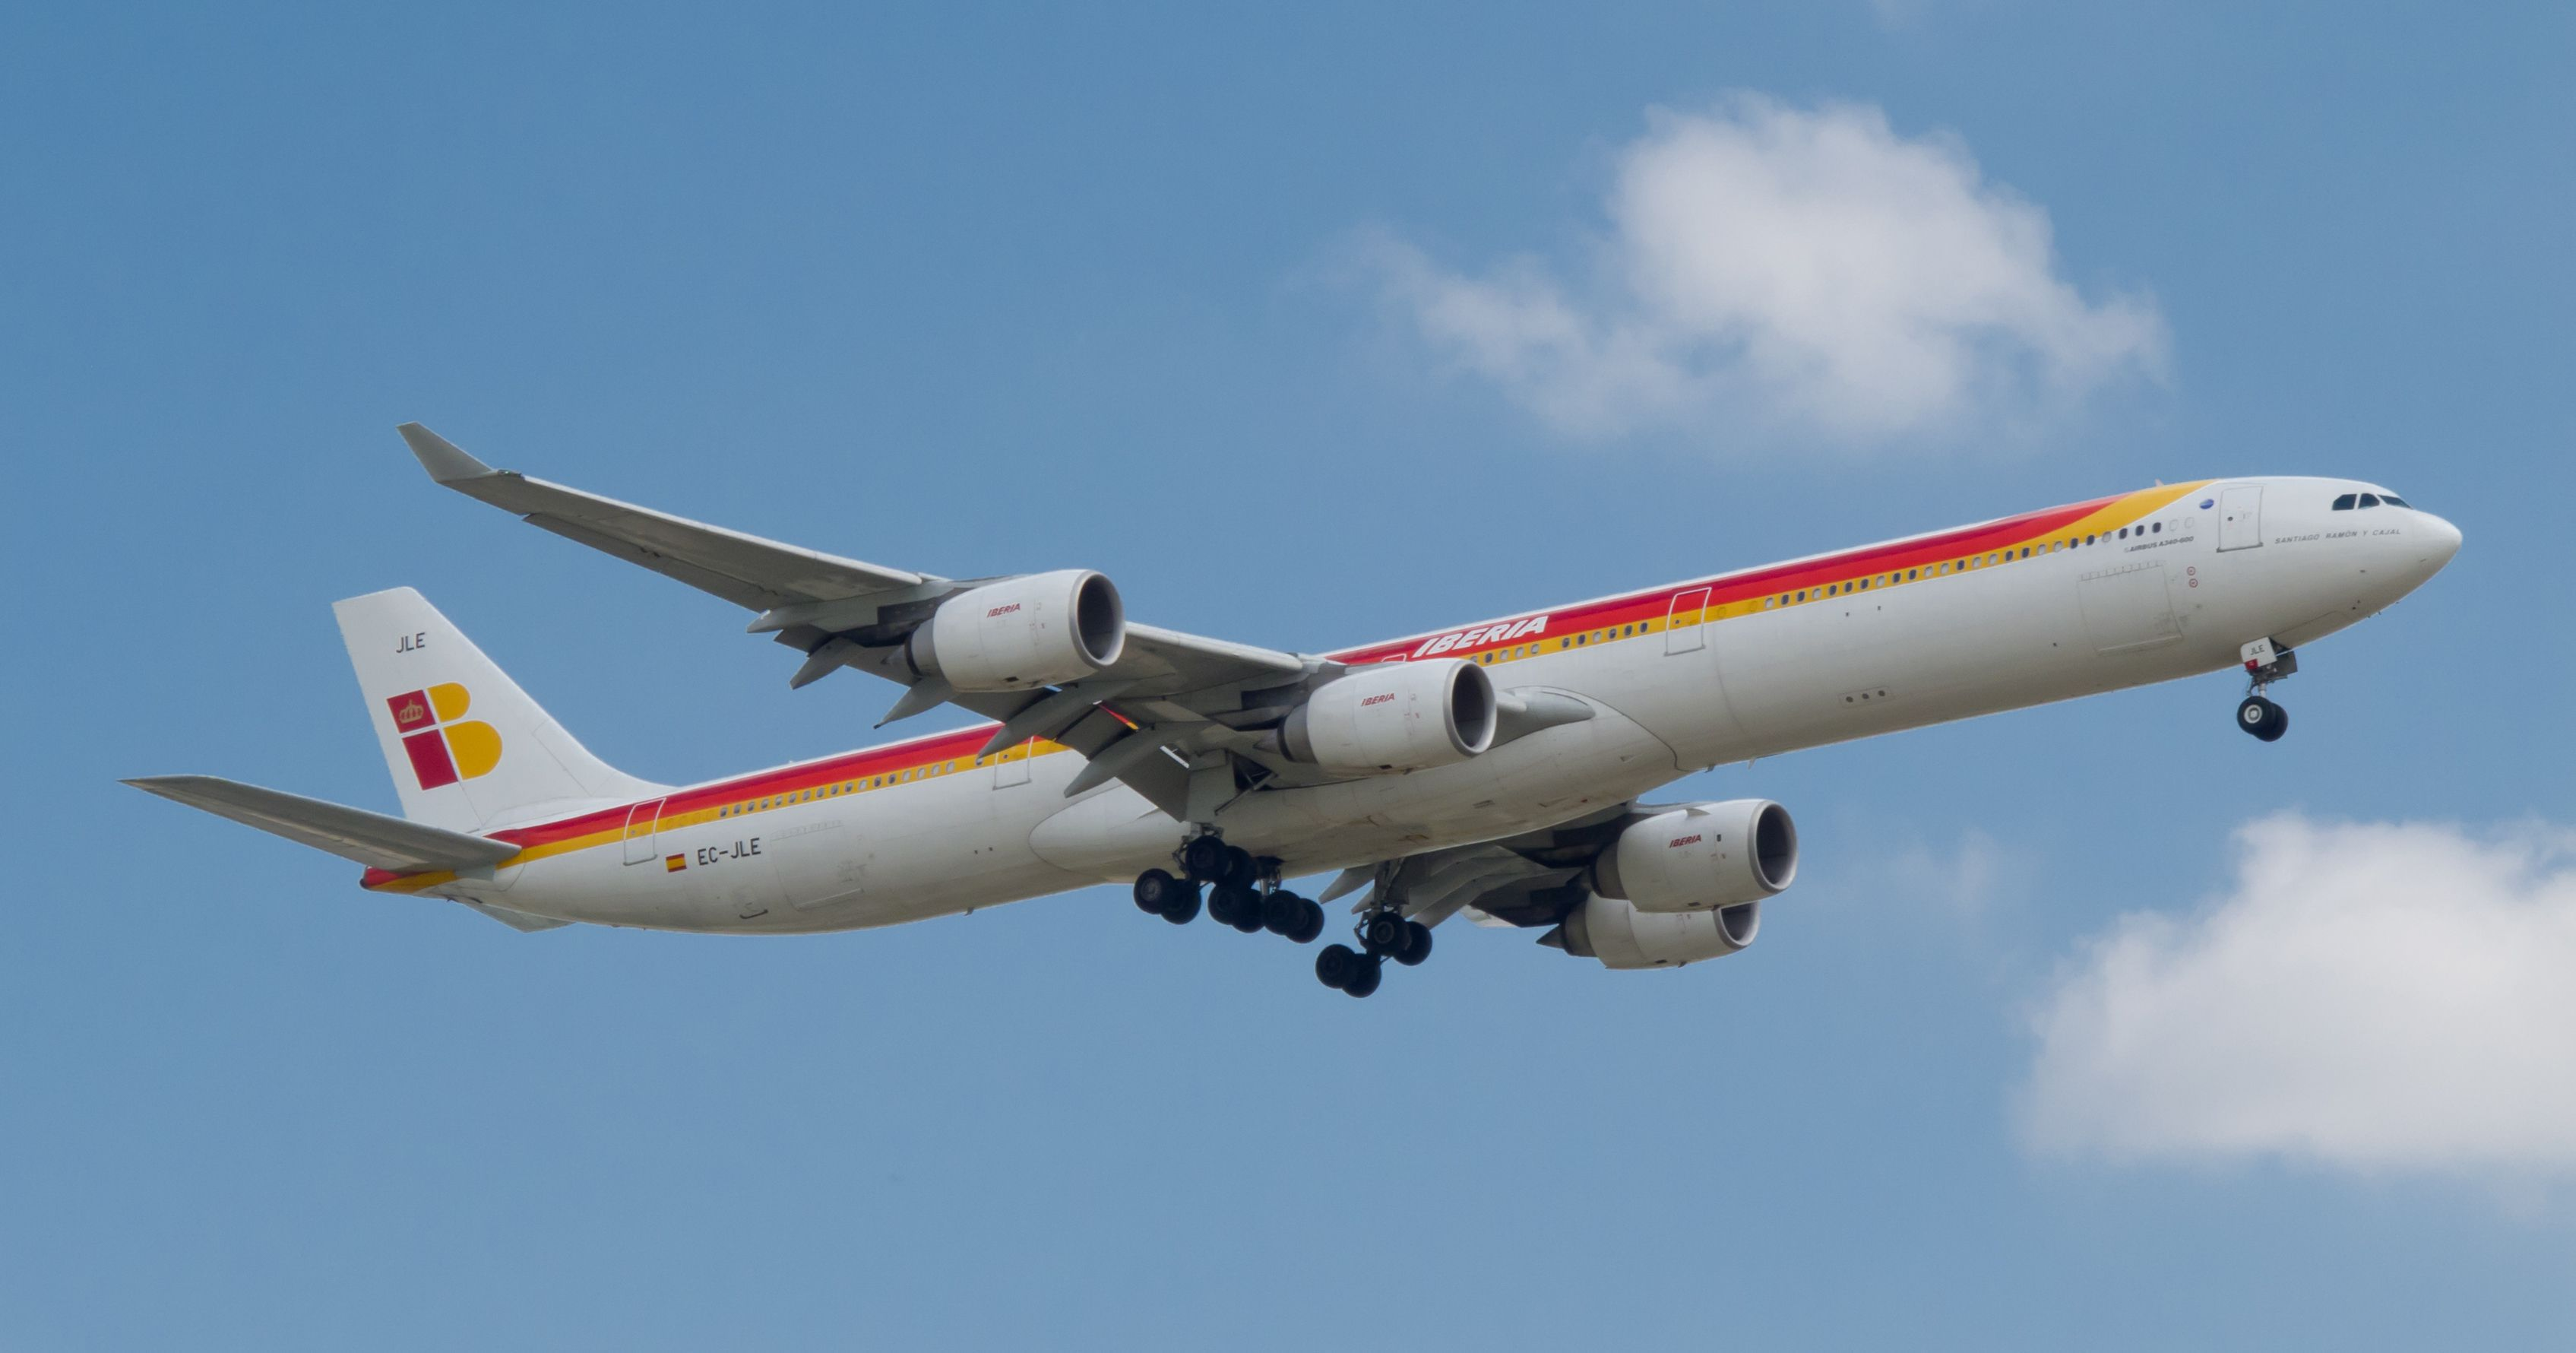 Airbus A340 In High Resolution